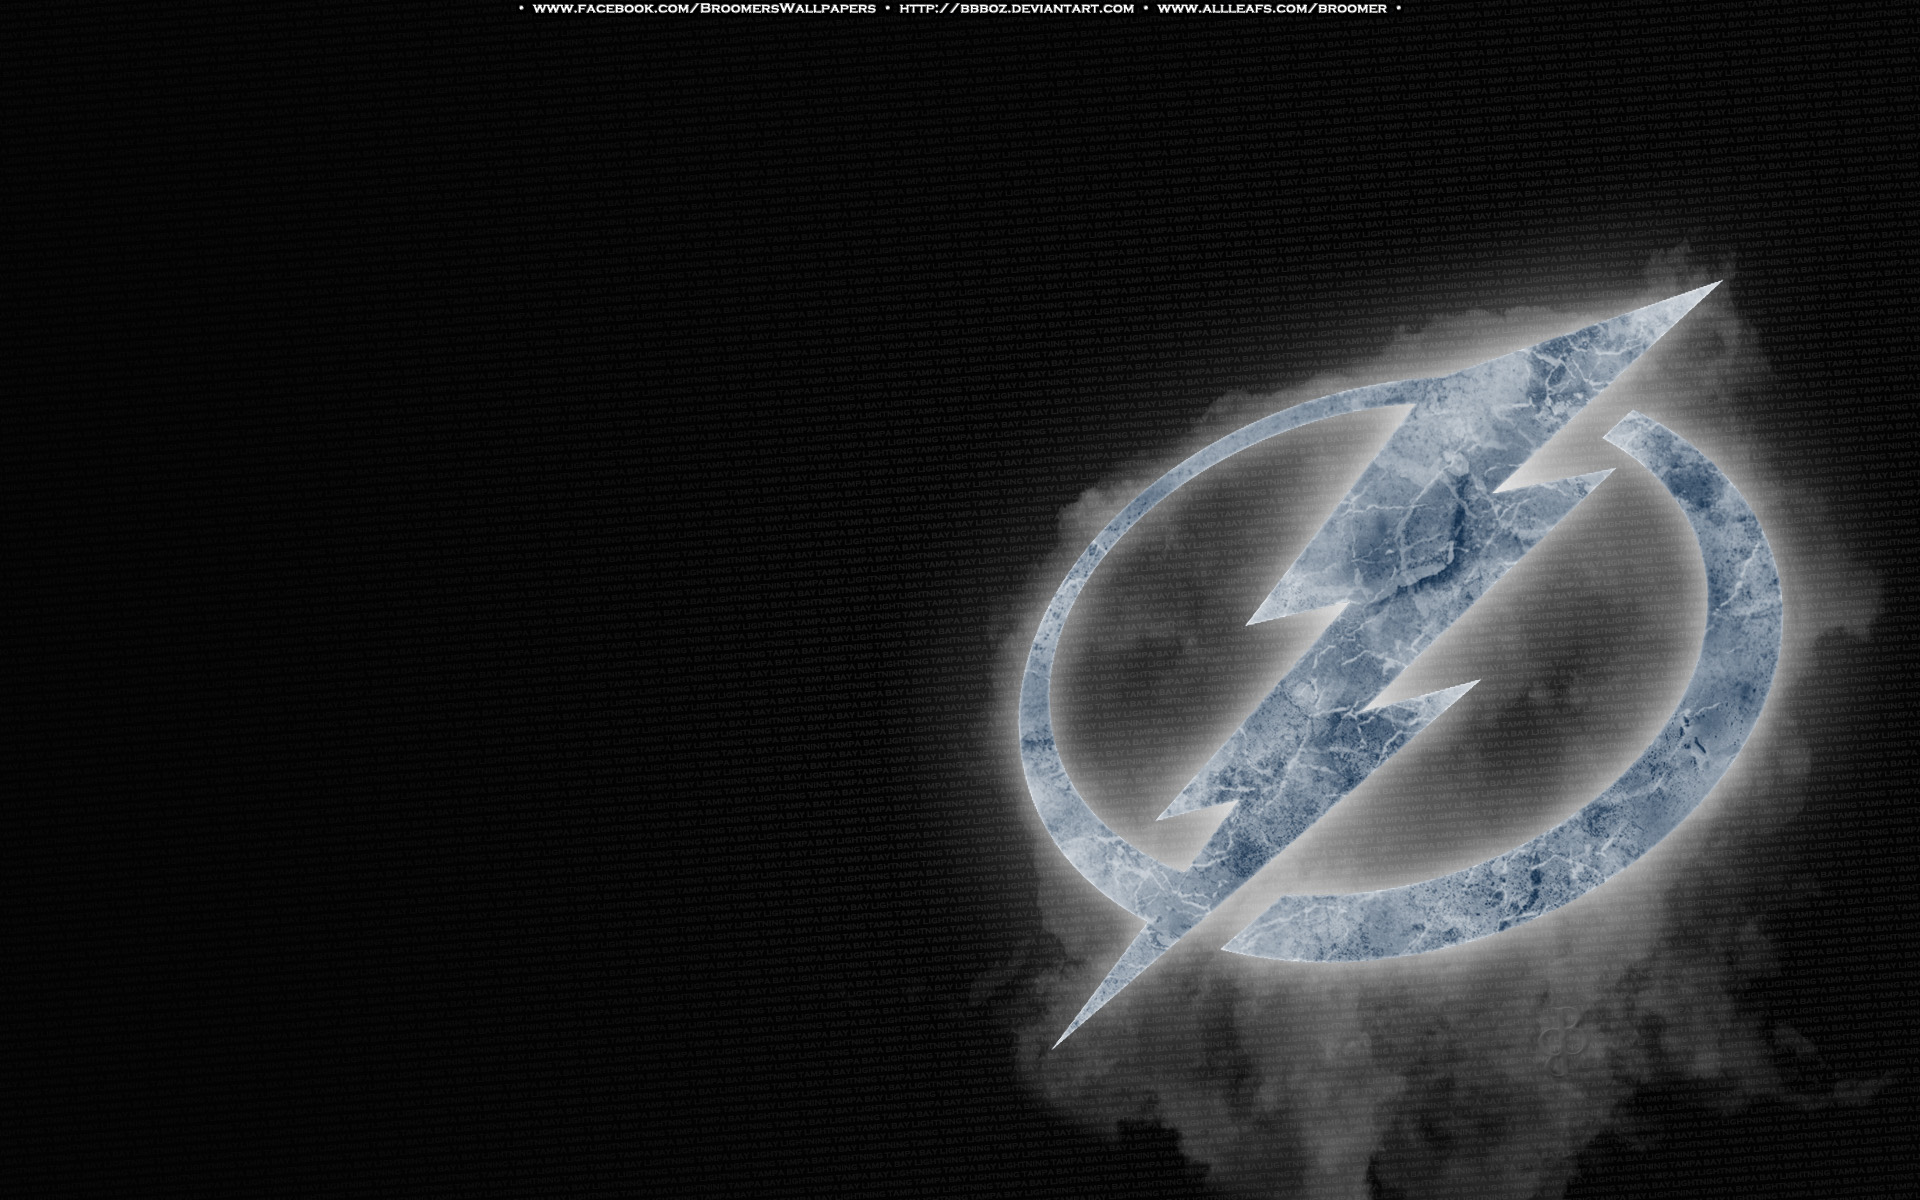 Tampa Bay Lightning Ice by bbboz 1920x1200